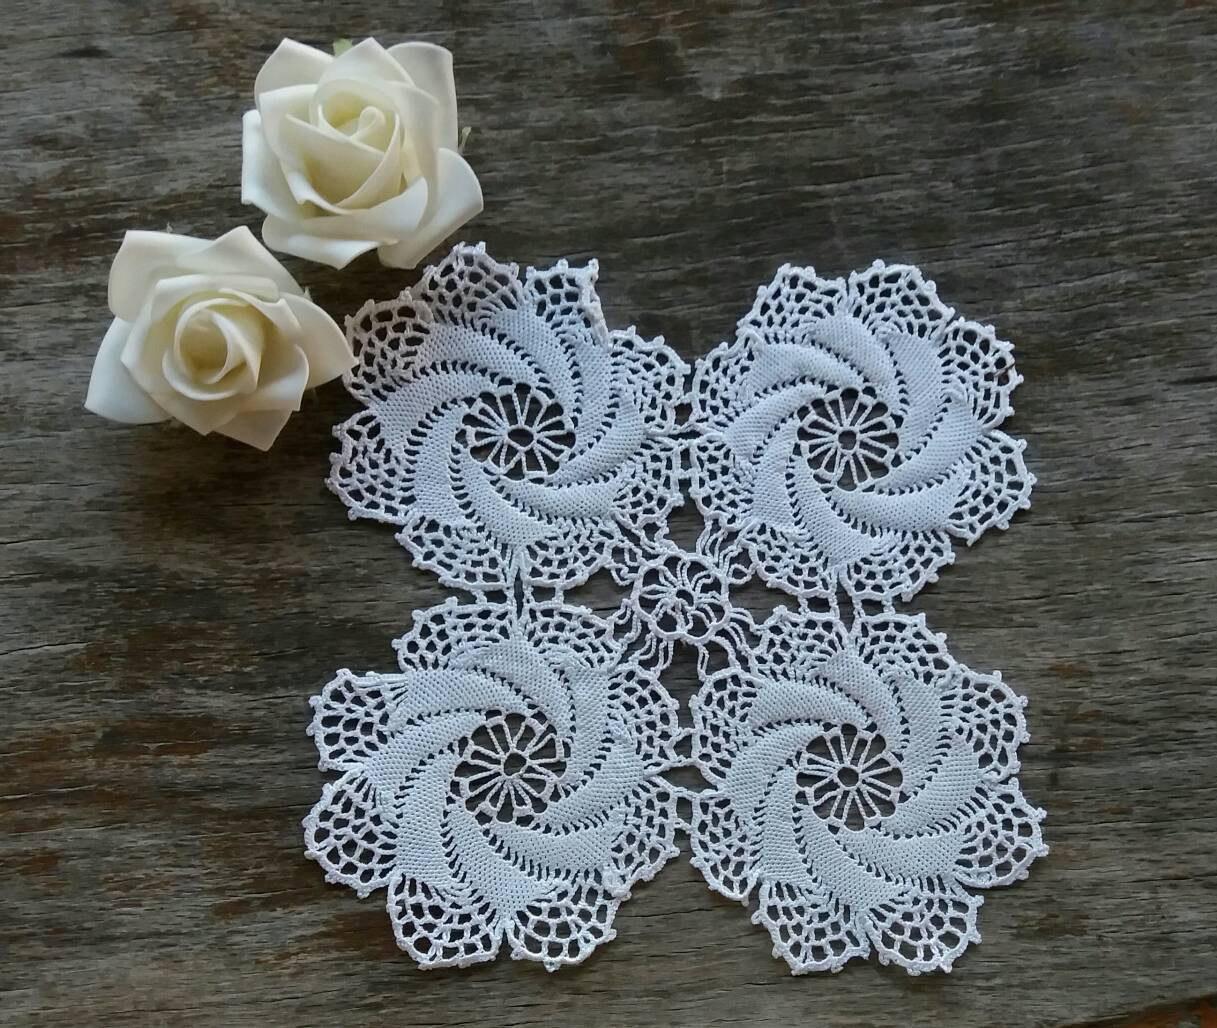 Square crochet doily White lace doily Small Flower Doily